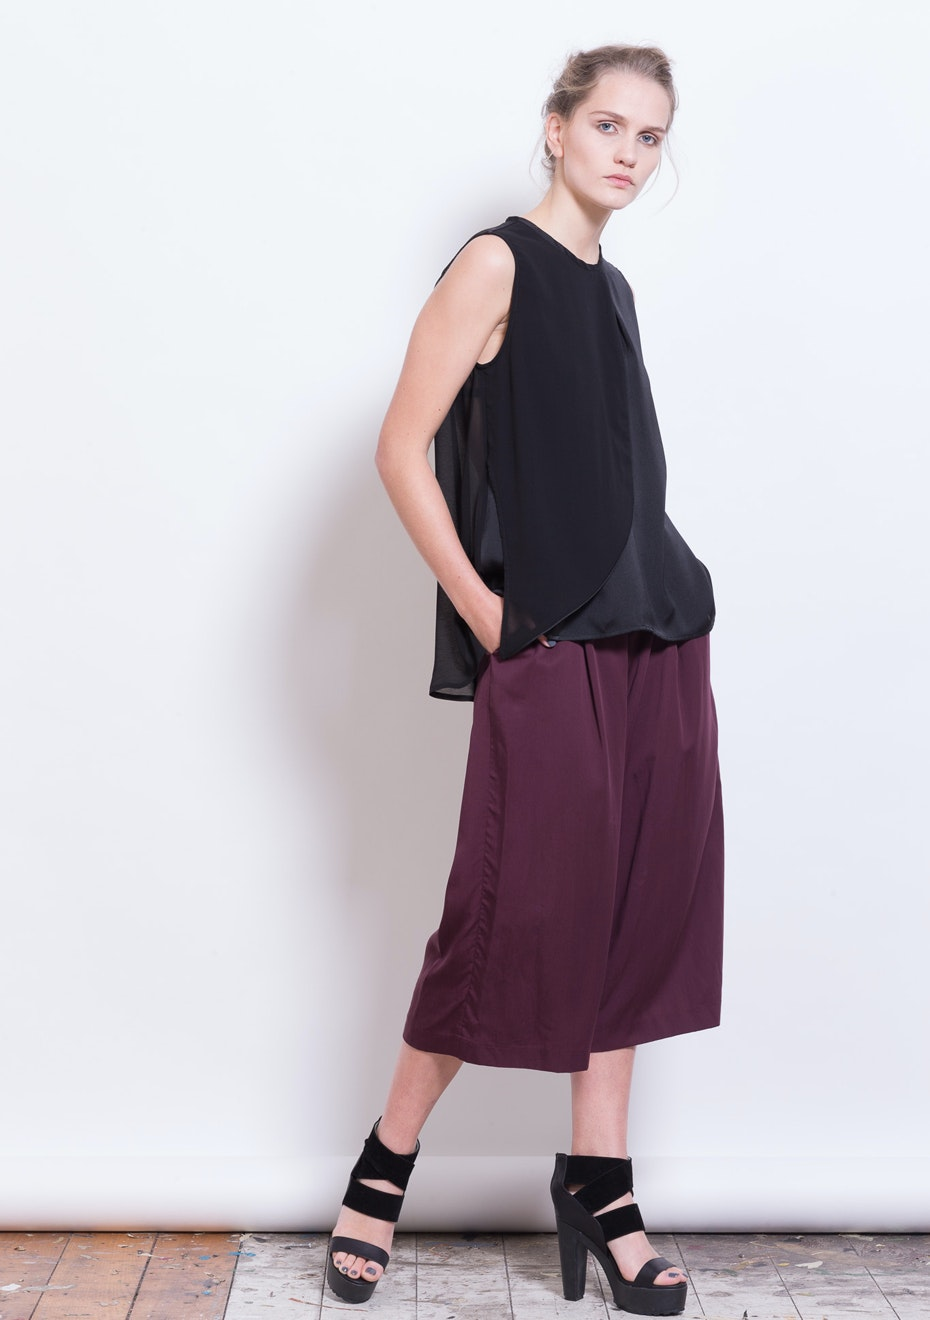 X-Plain - Gala's Top - Black